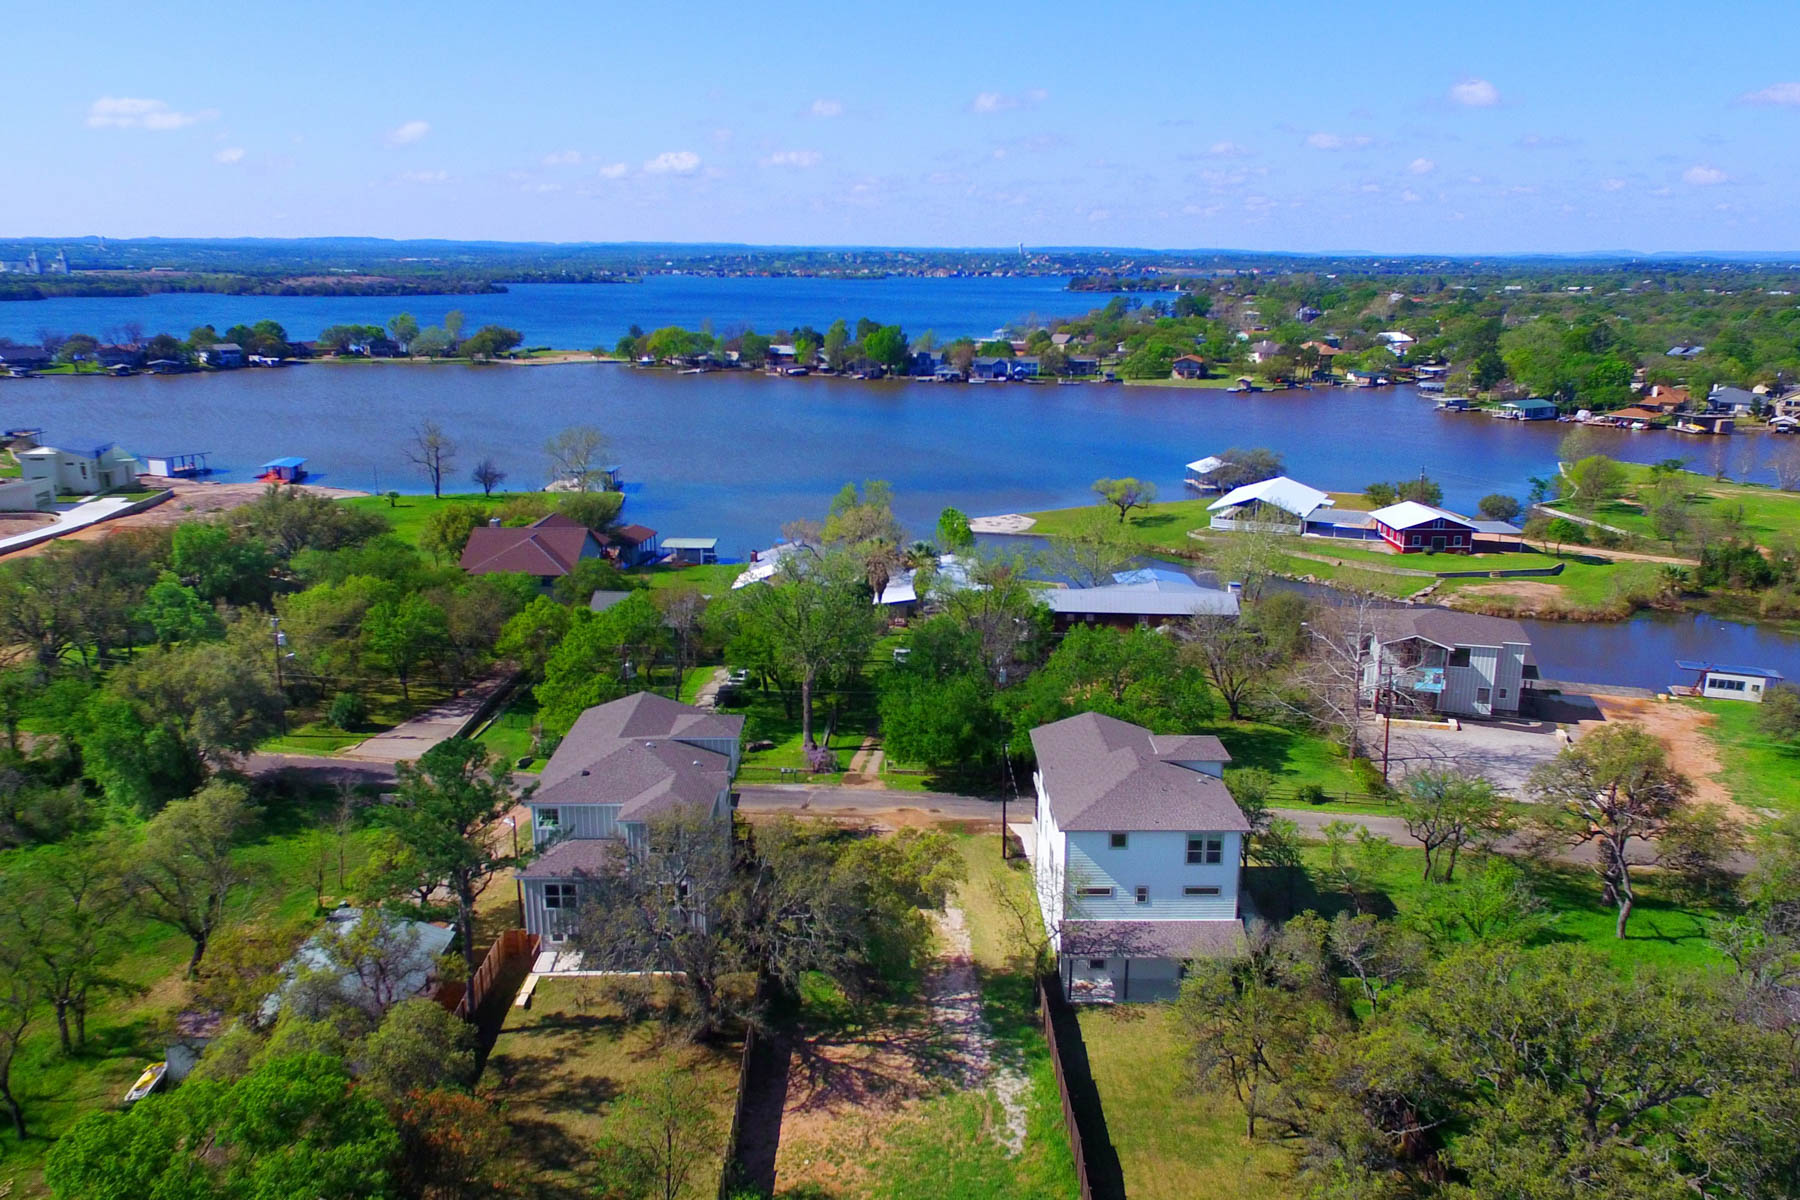 Single Family Home for Sale at To Be Built in Woodland Hills 1517 Hilltop Dr Granite Shoals, Texas 78654 United States